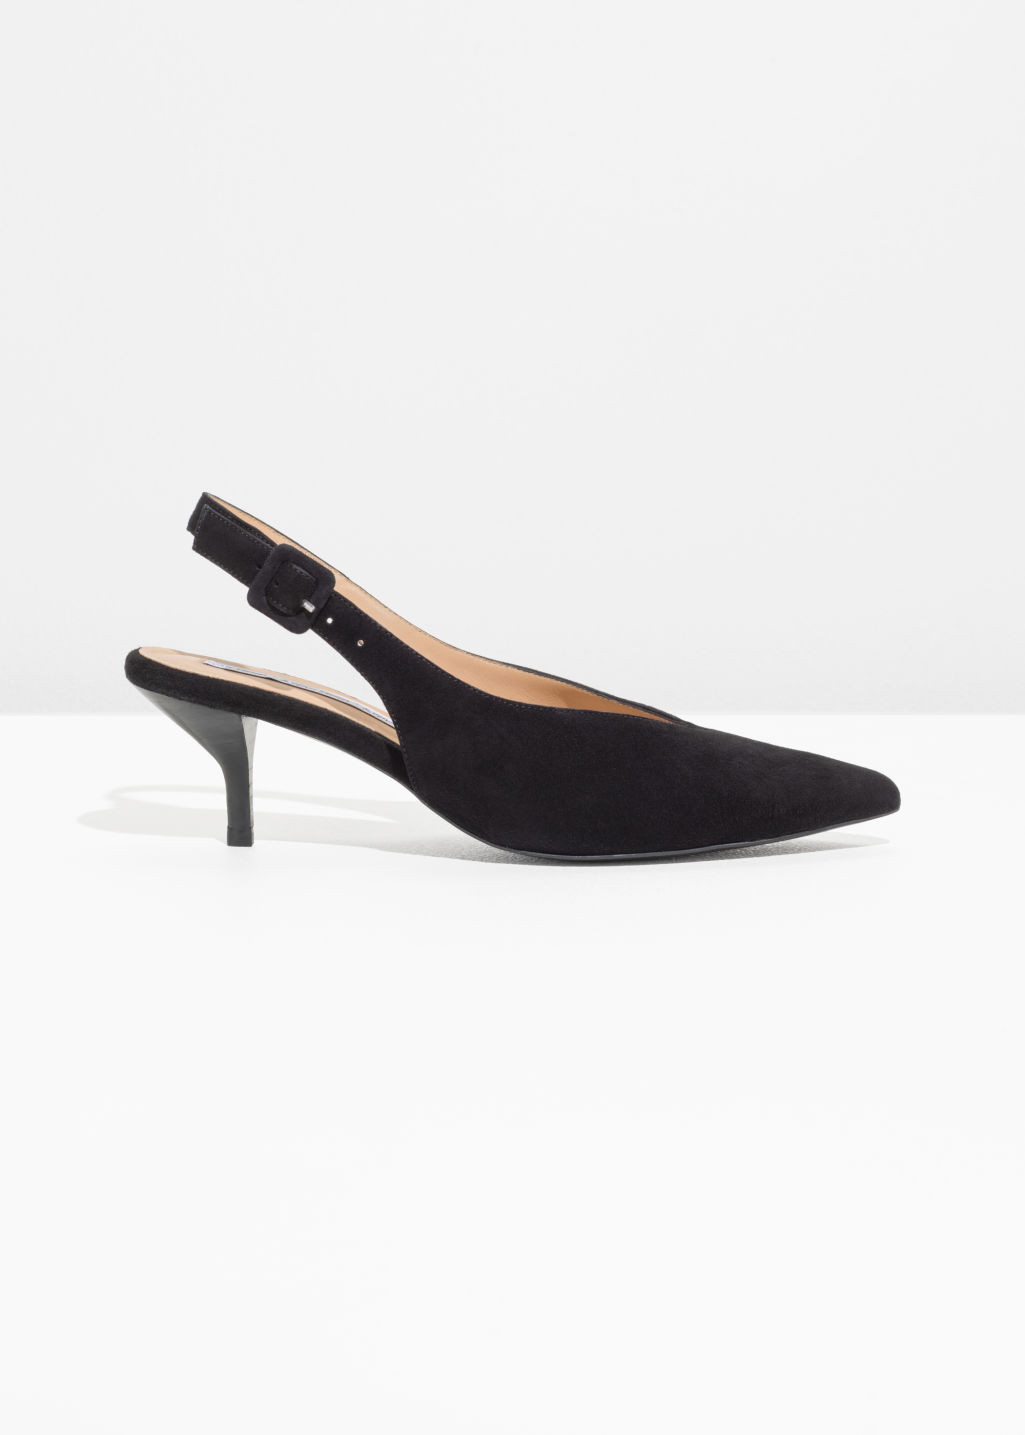 995545e3ed2 Pointed Suede Kitten Heels - Black - Pumps -   Other Stories